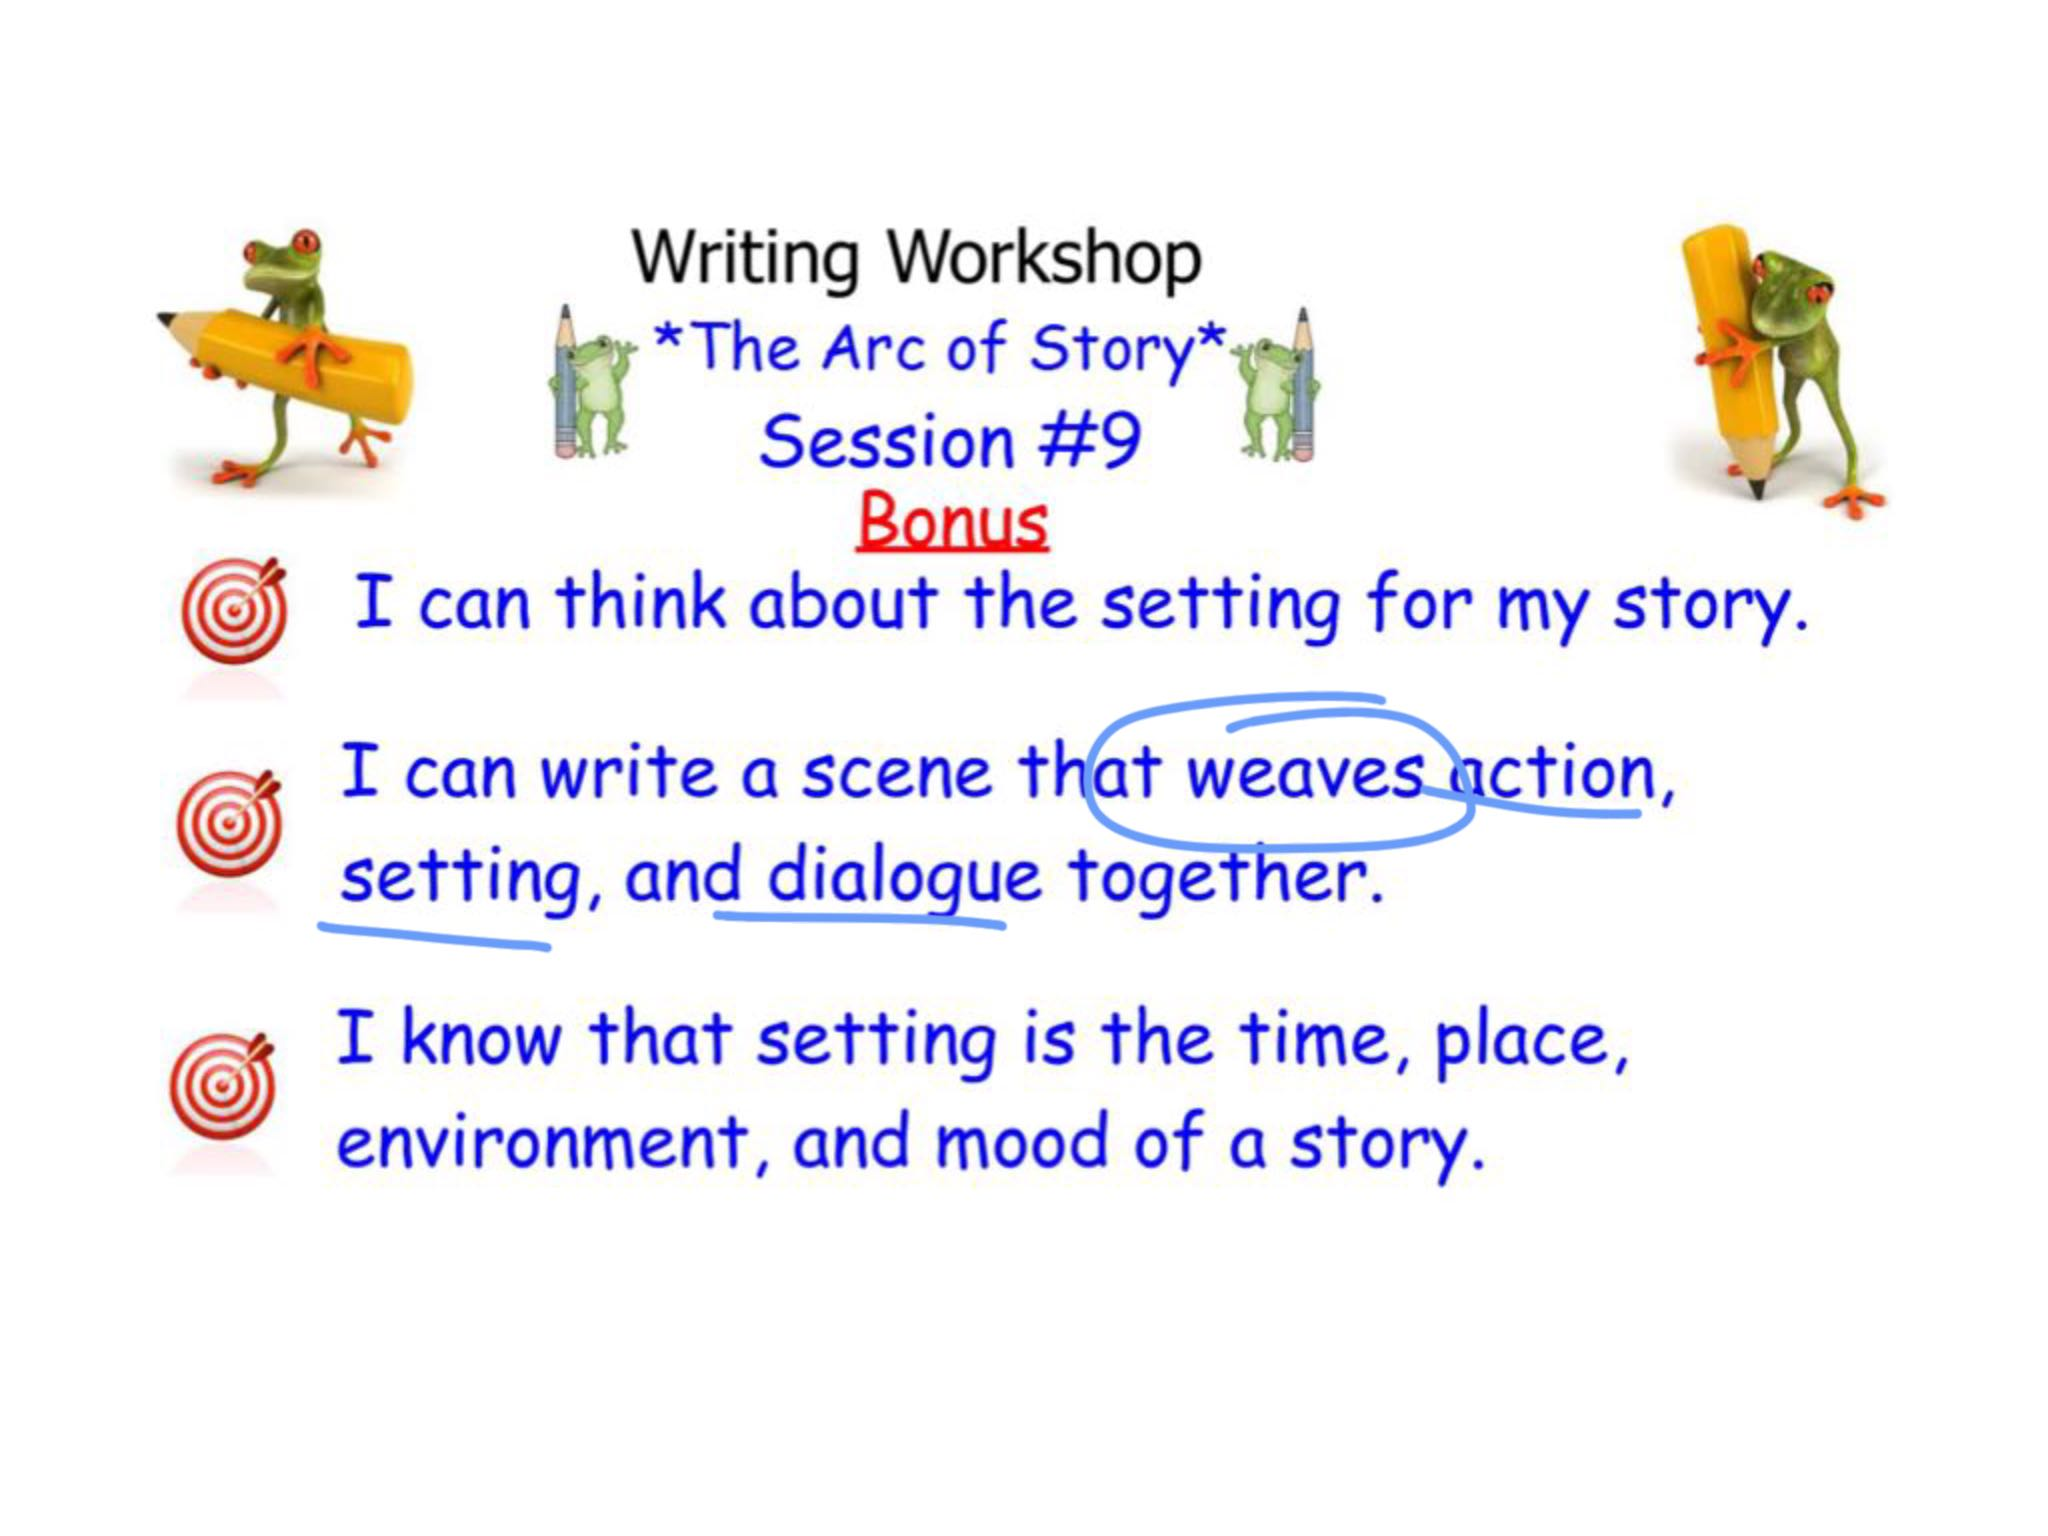 I will write some action, dialogue and setting description step by step so you see how it's done!